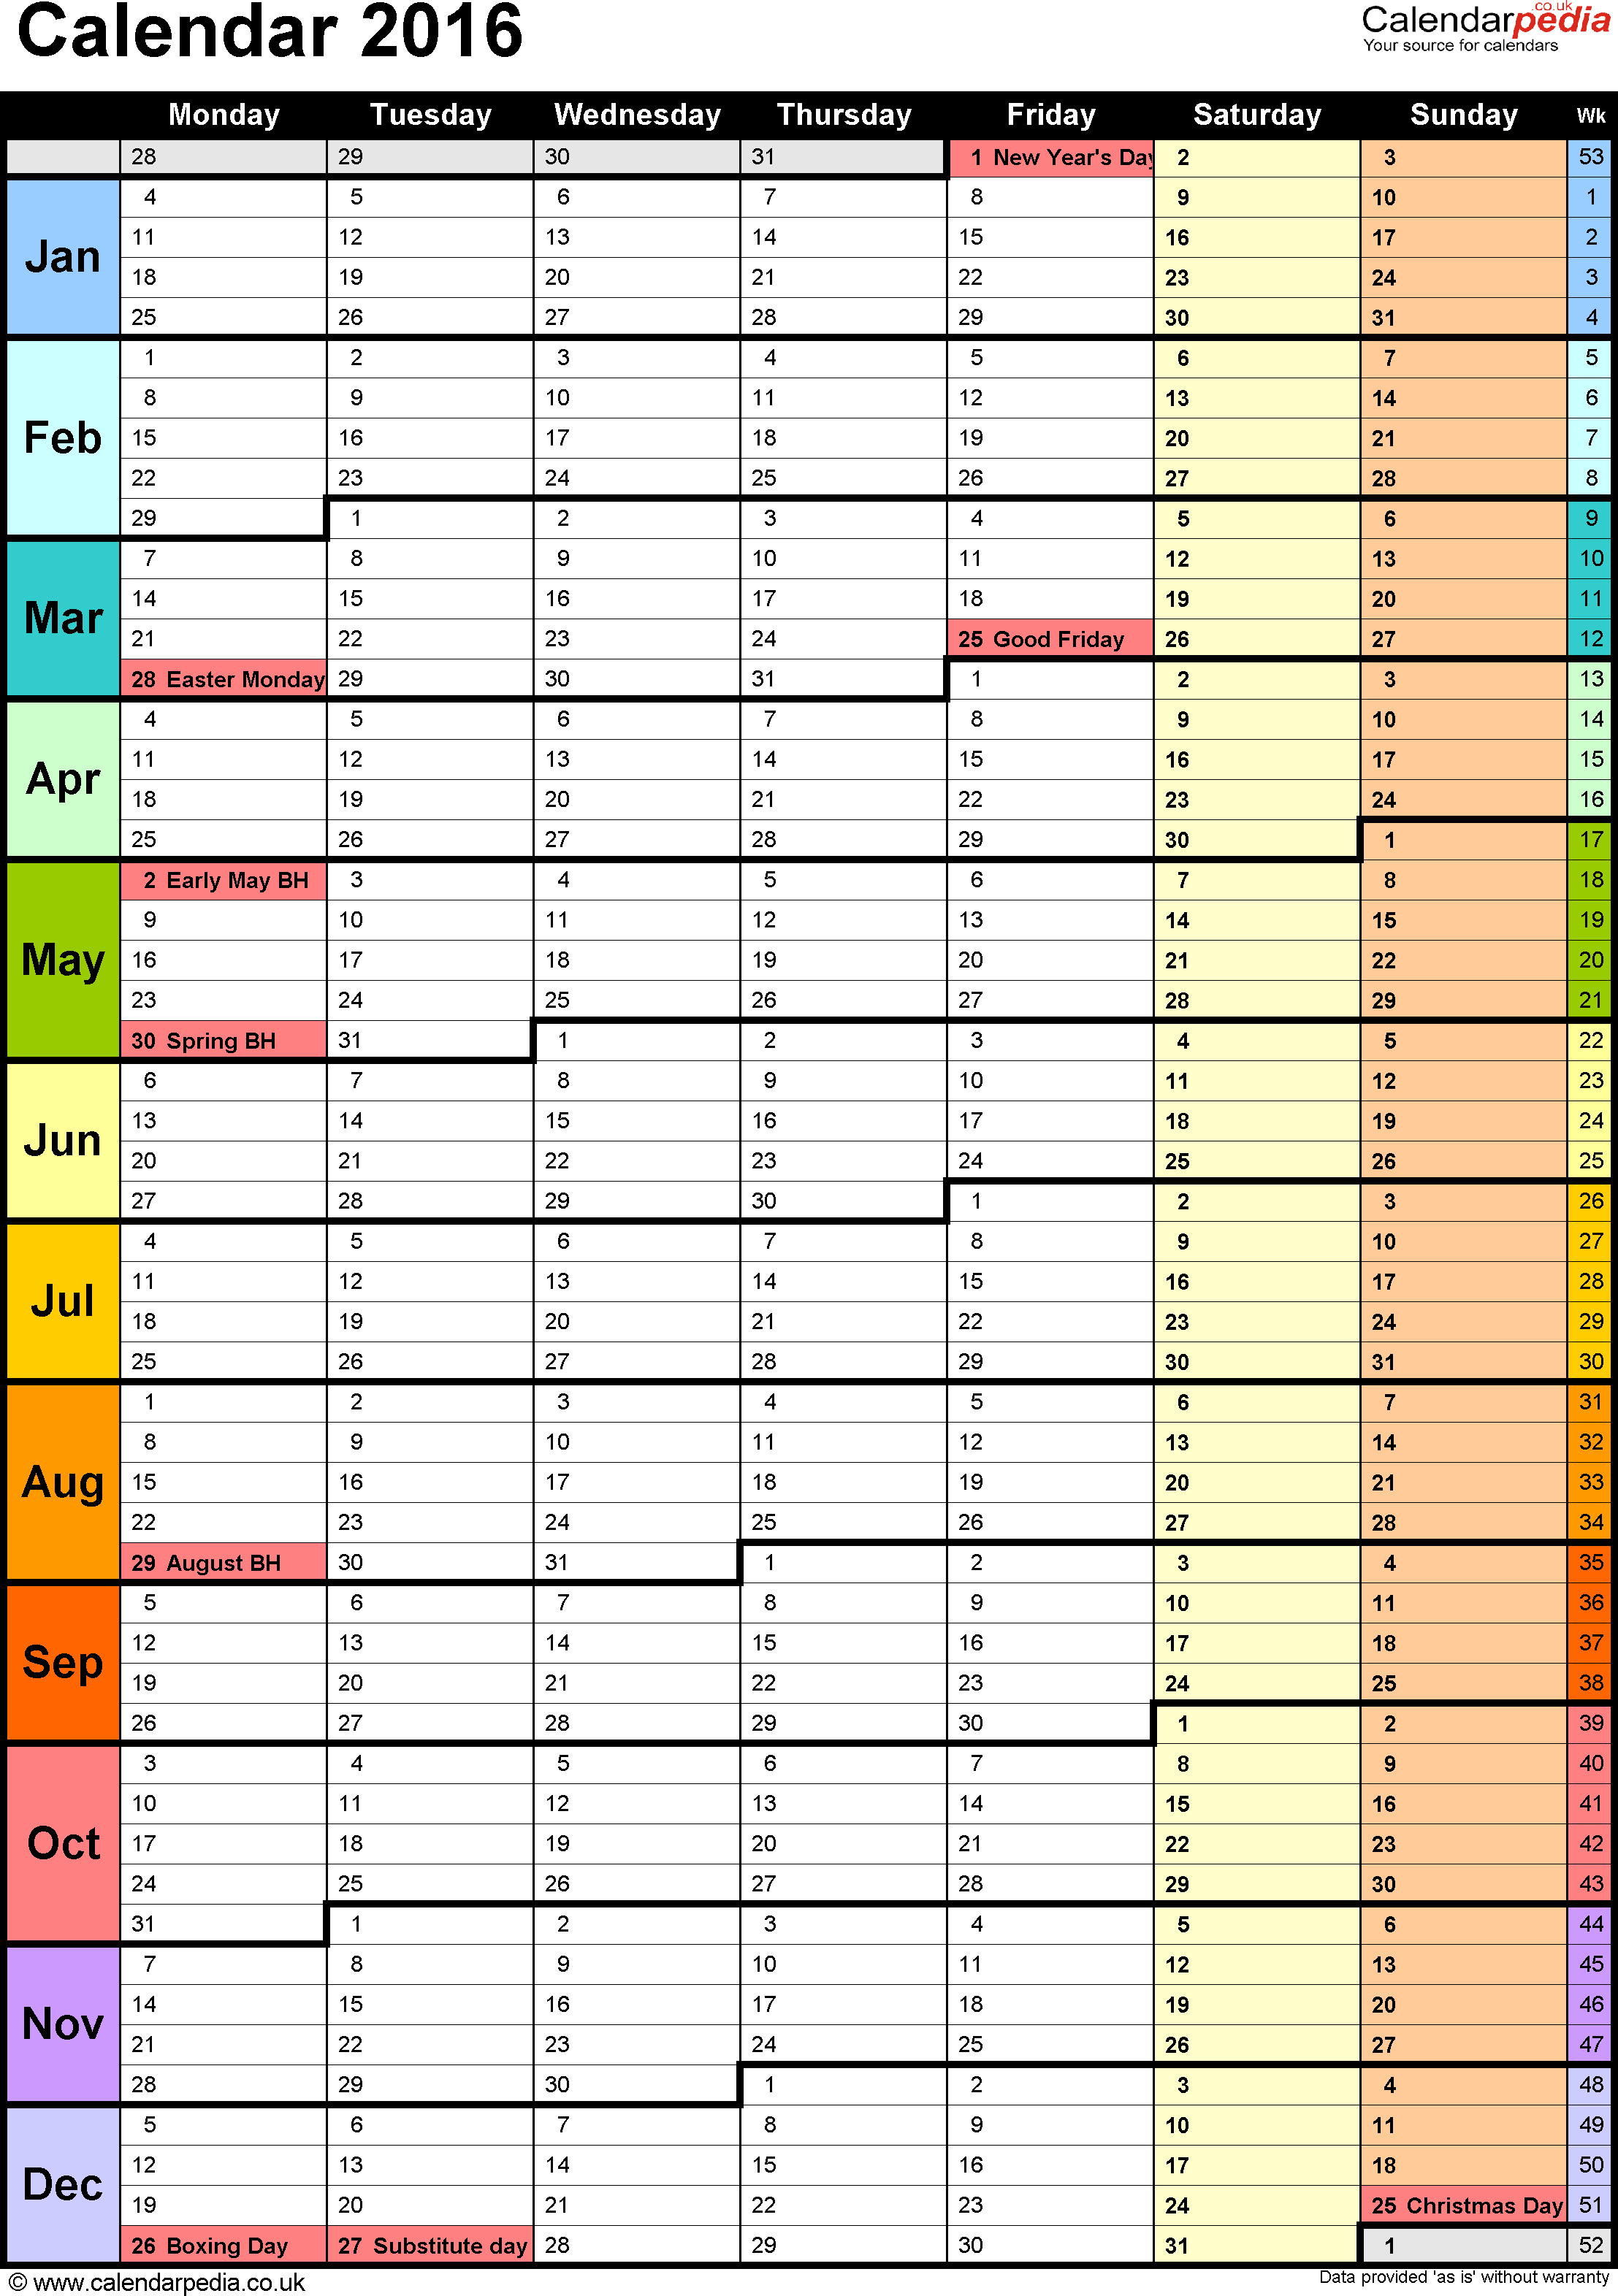 Template 15: Yearly calendar 2016 as PDF template, portrait